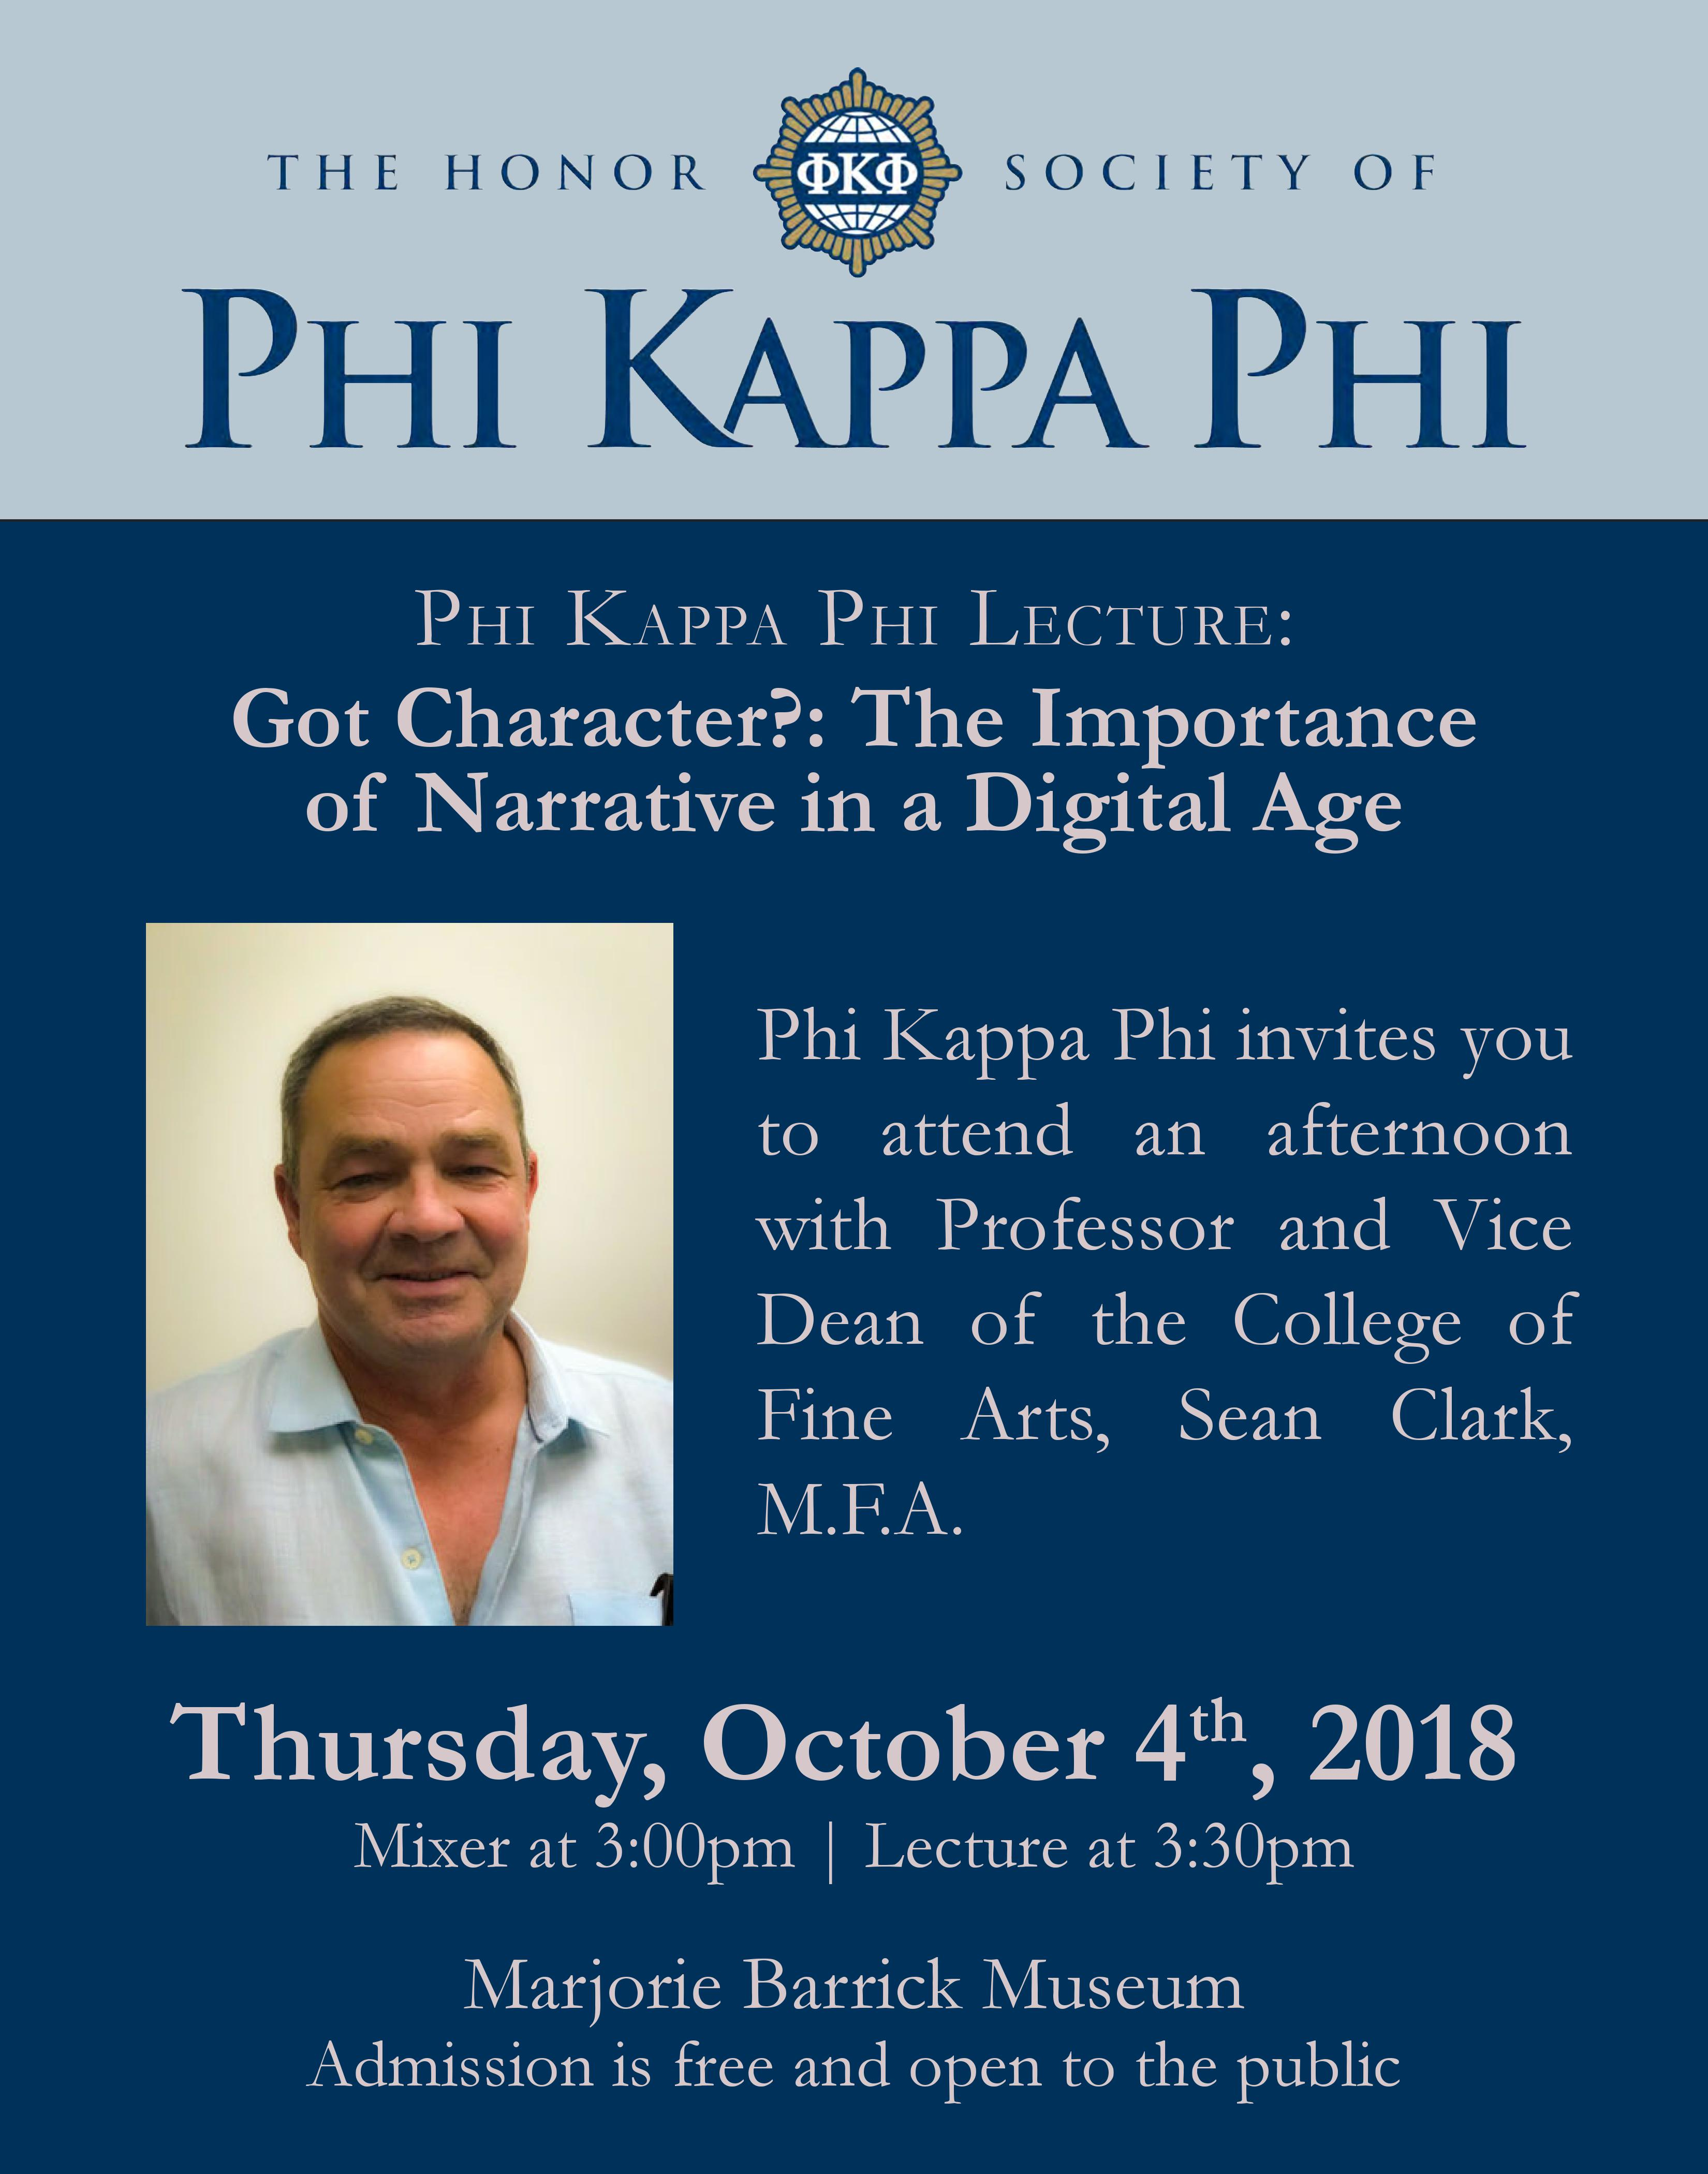 Phi Kappa Phi Lecture Got Character?: The Importance of Narrative in a Digital Age